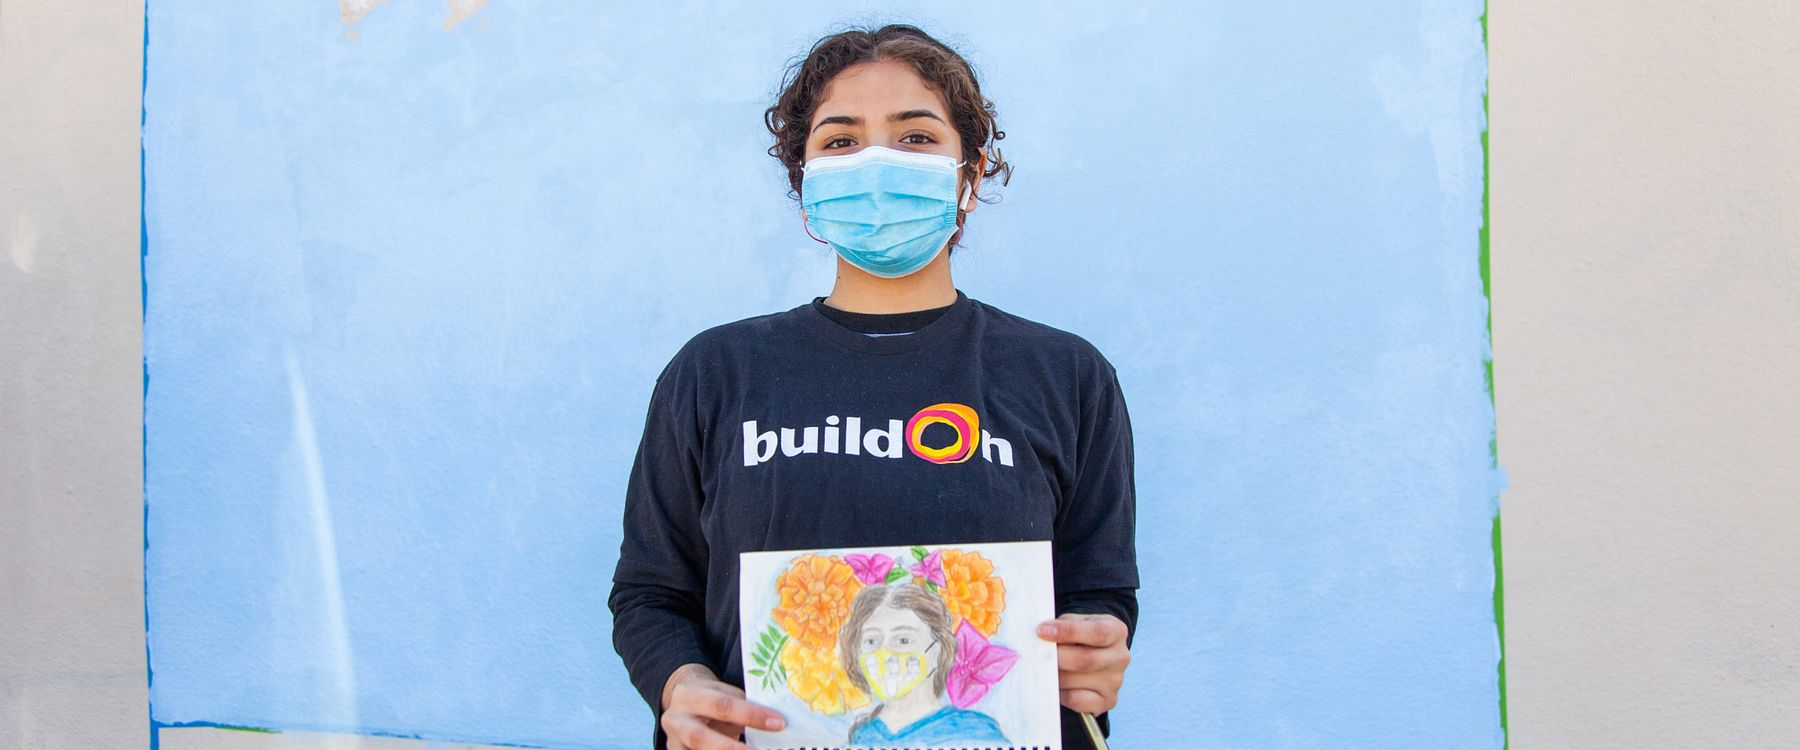 ARISE student and artist, Paulina Ramirez holding a sketch of her mural idea standing in front of a wall painted sky-blue